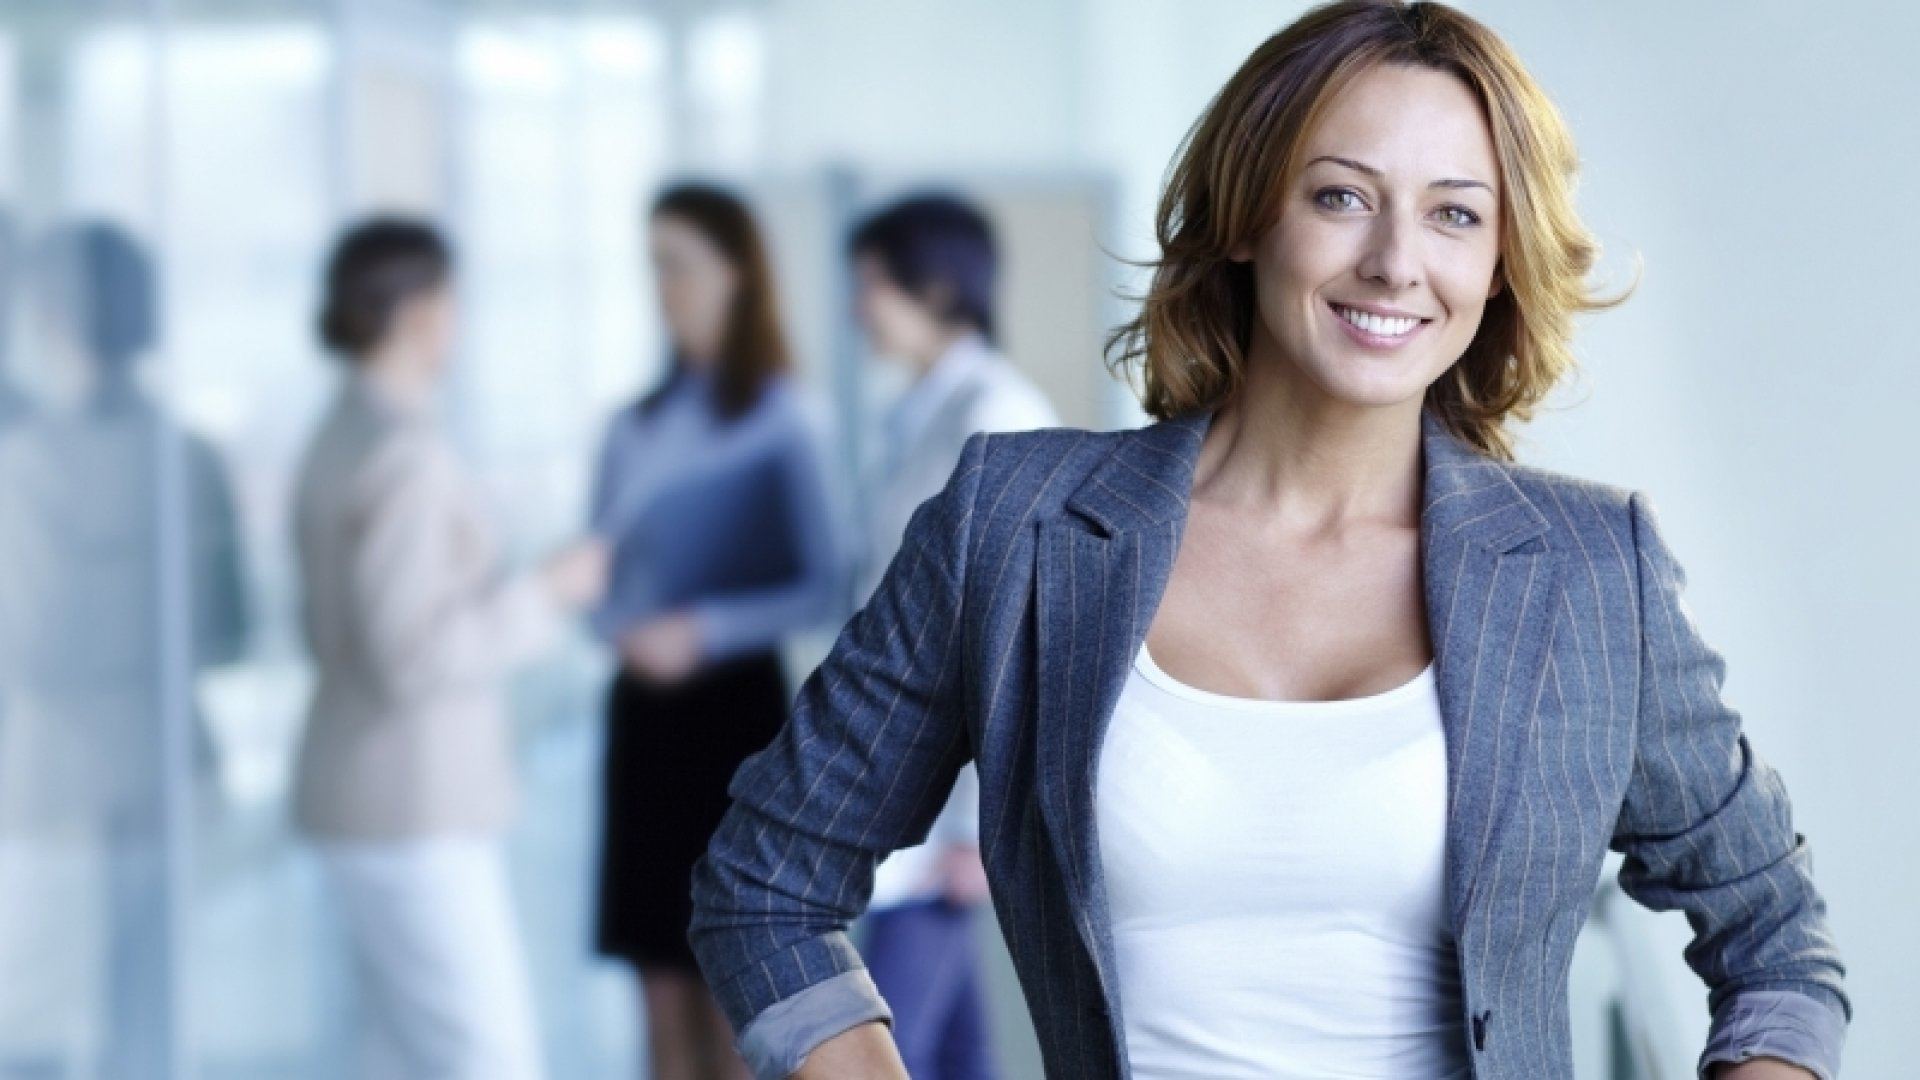 11 Remarkably Effective Ways to Lead by Example